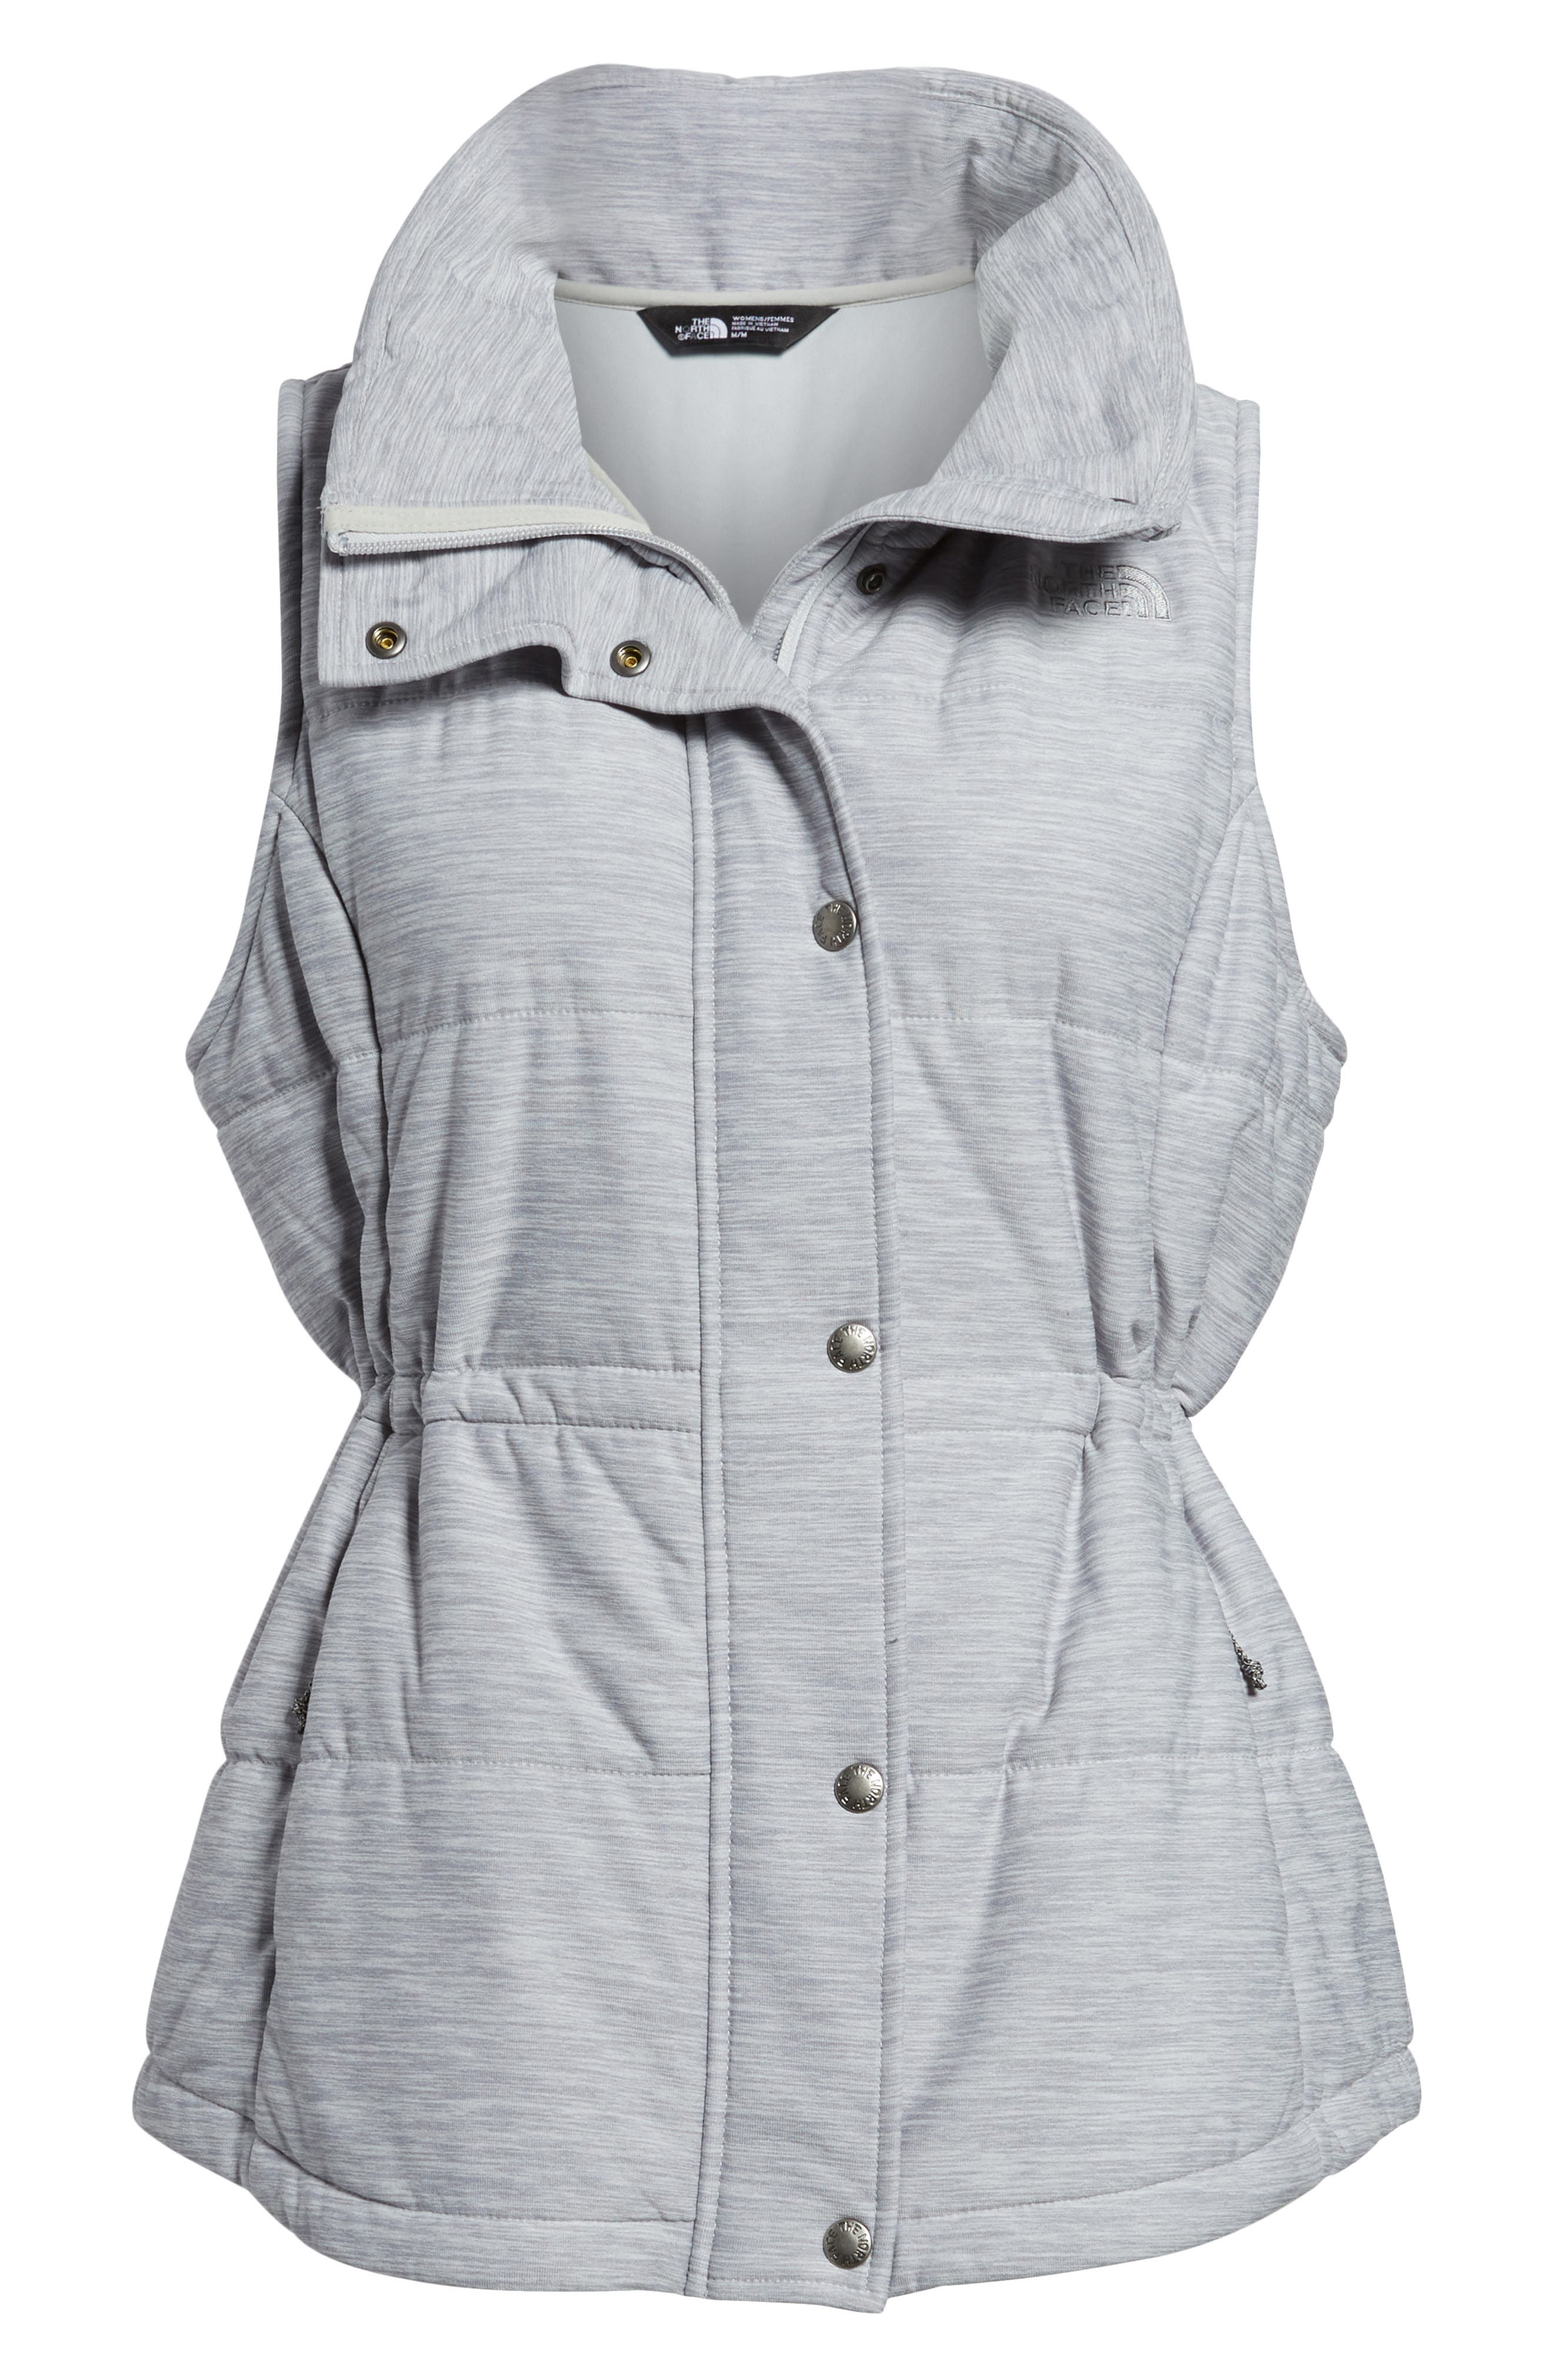 'Pseudio' Quilted Vest,                             Alternate thumbnail 8, color,                             Light Grey Heather